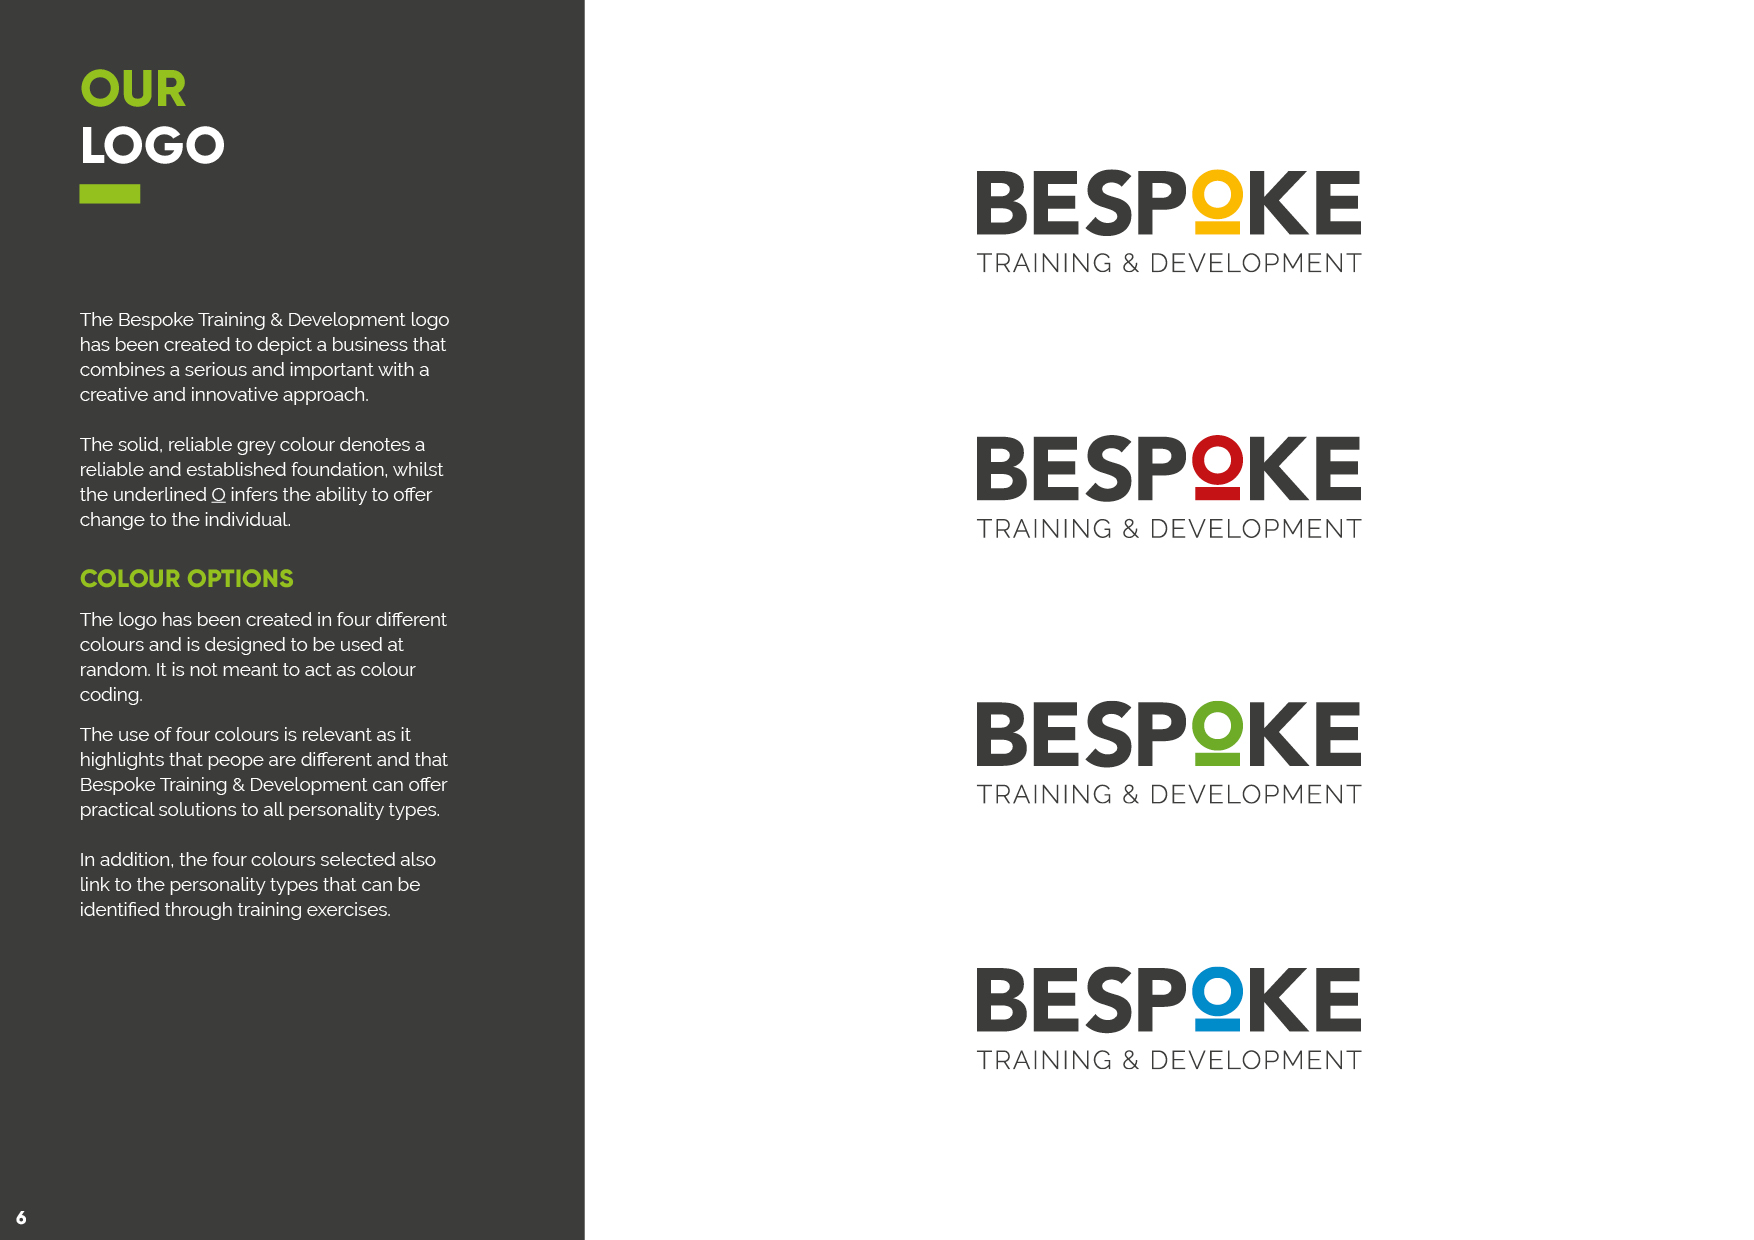 Bespoke Training & Development FINAL 2.6